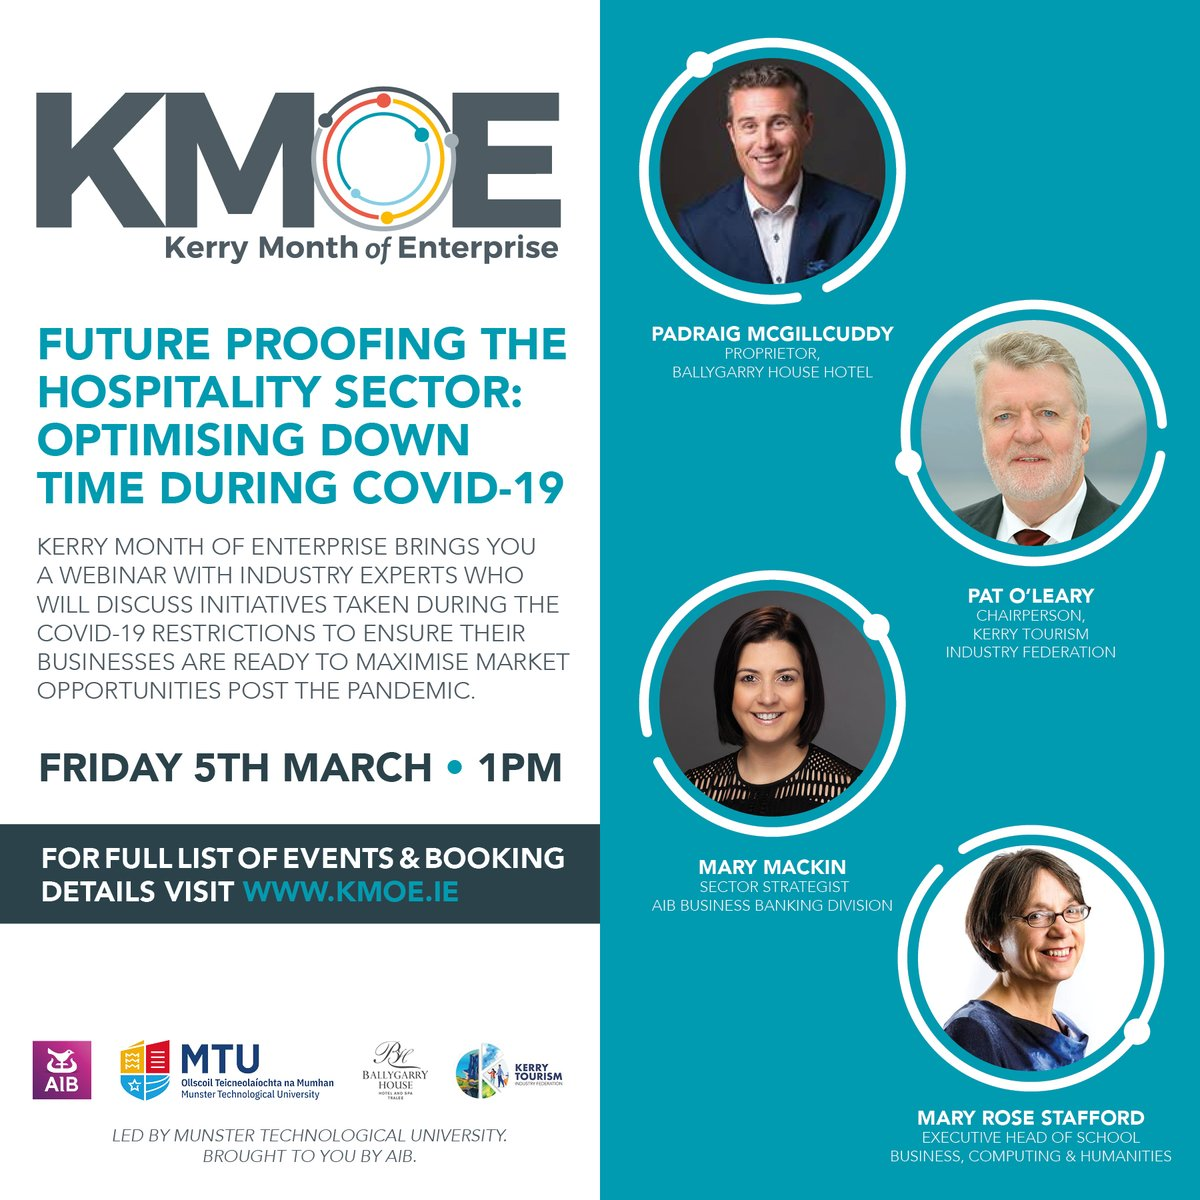 We will be hosting a webinar as part of Kerry Month of Enterprise on Friday 5th March at 1pm with AIB on Future Proofing the Hospitality Sector: Optimising down time during Covid-19. Register here https://t.co/xhuyogqRj4.  Full details at https://t.co/TcEwK1xPB4 https://t.co/TfxTohvnLI